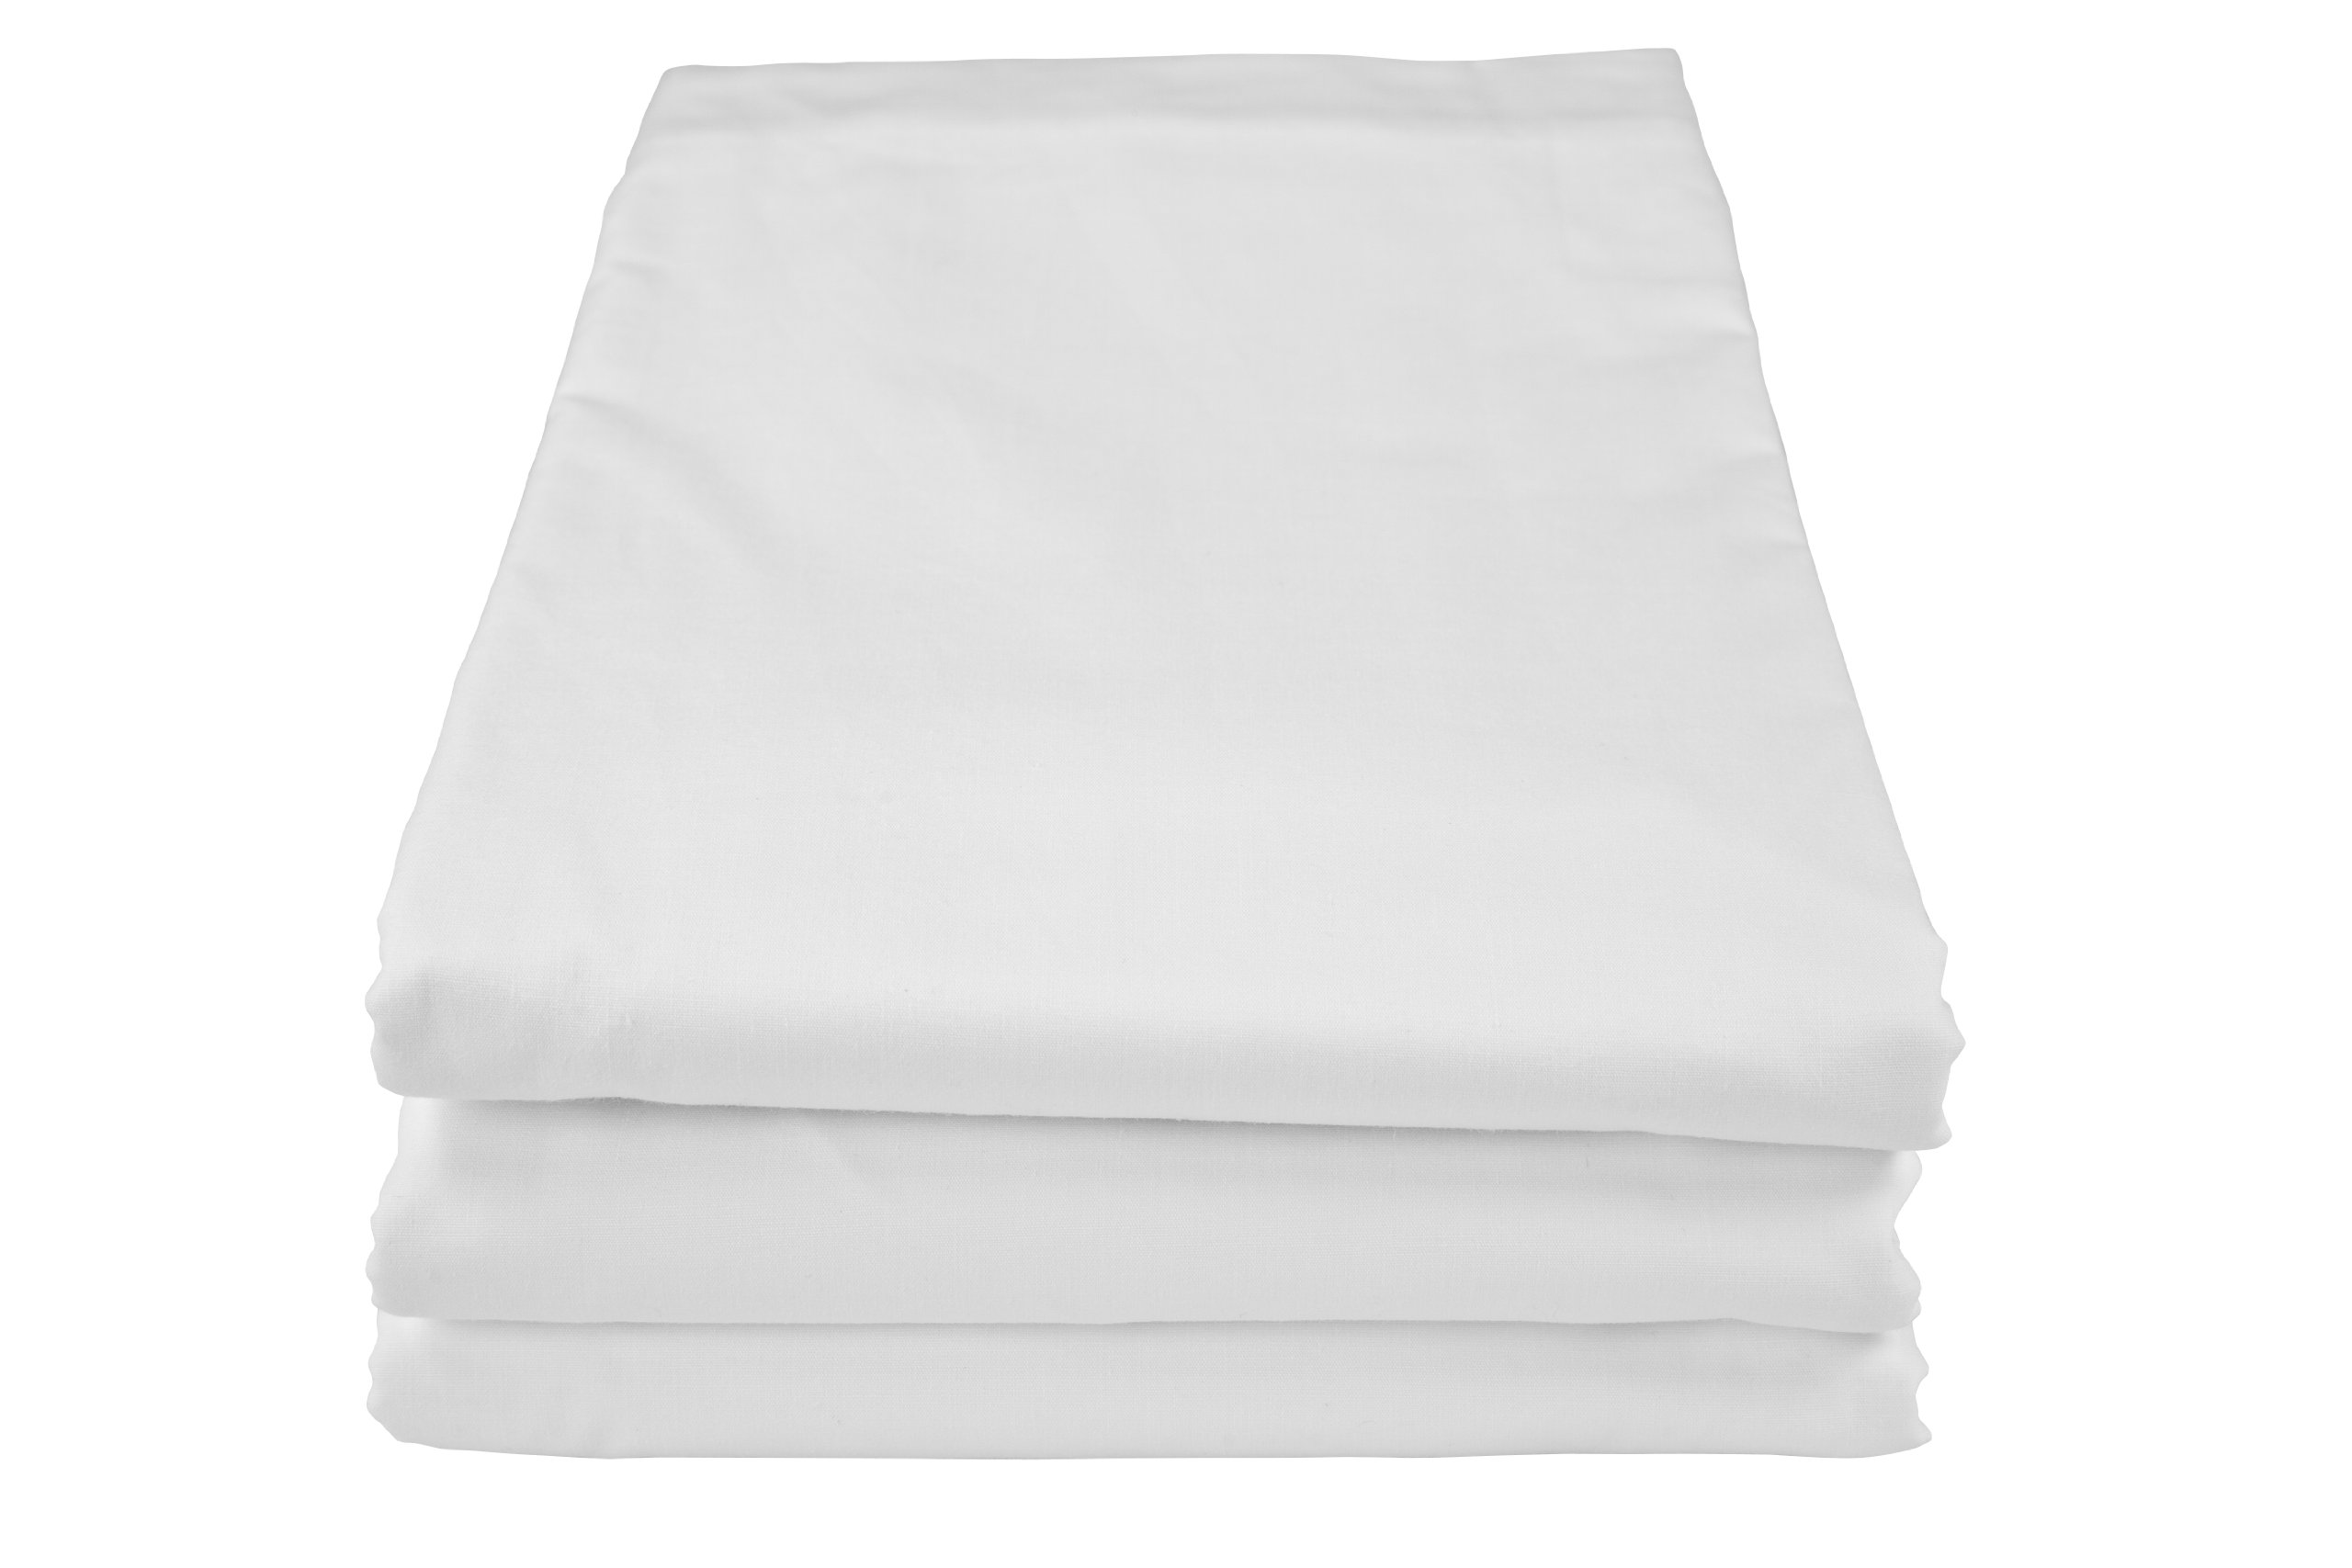 Riegel 90 by 115-Inch Queen Flat Sheet with 200 Thread Count, White, 6-Pack